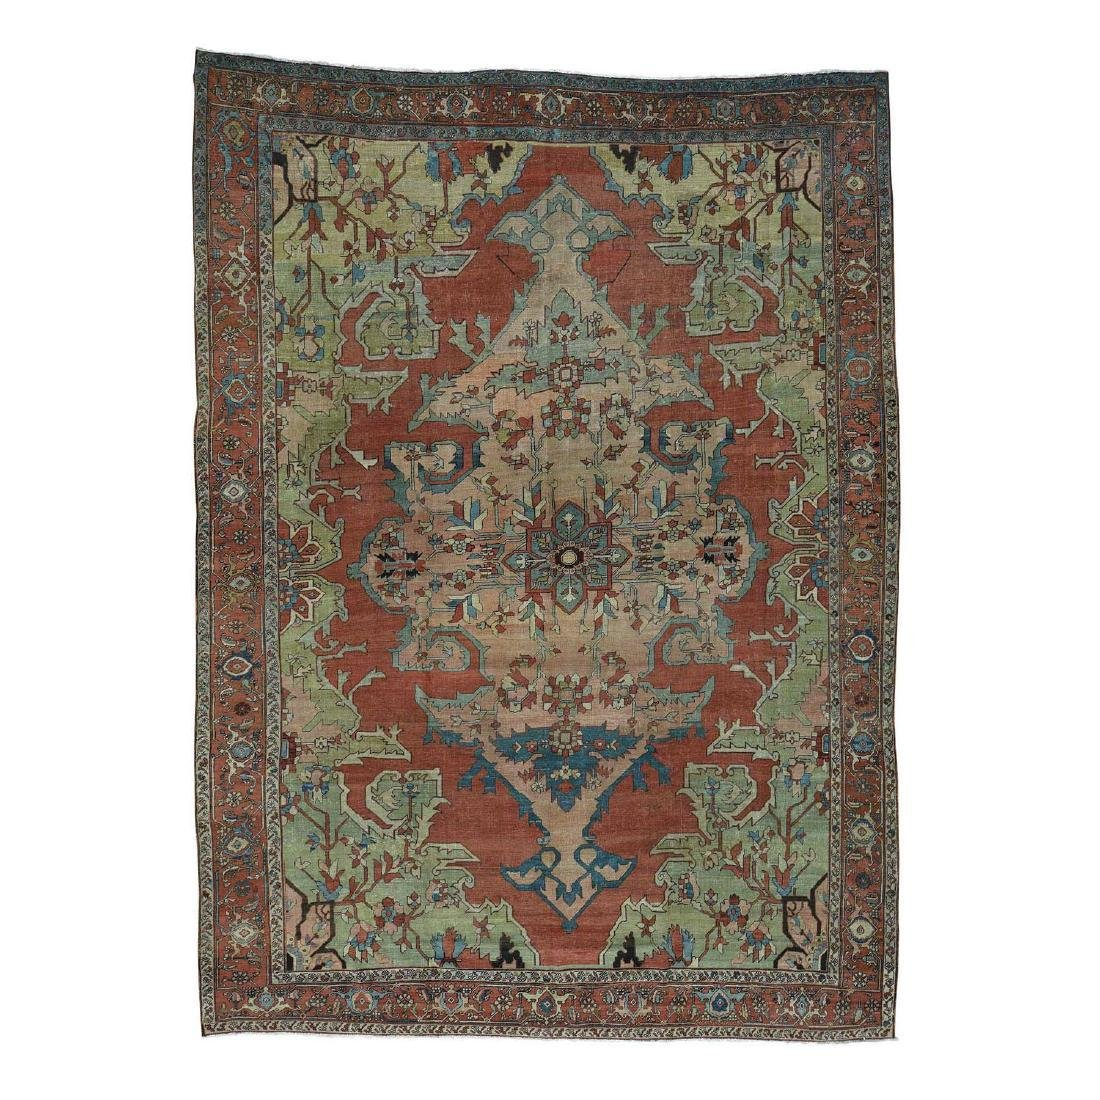 Antique Persian Serapi Hand-Knotted Rug 9.2x13